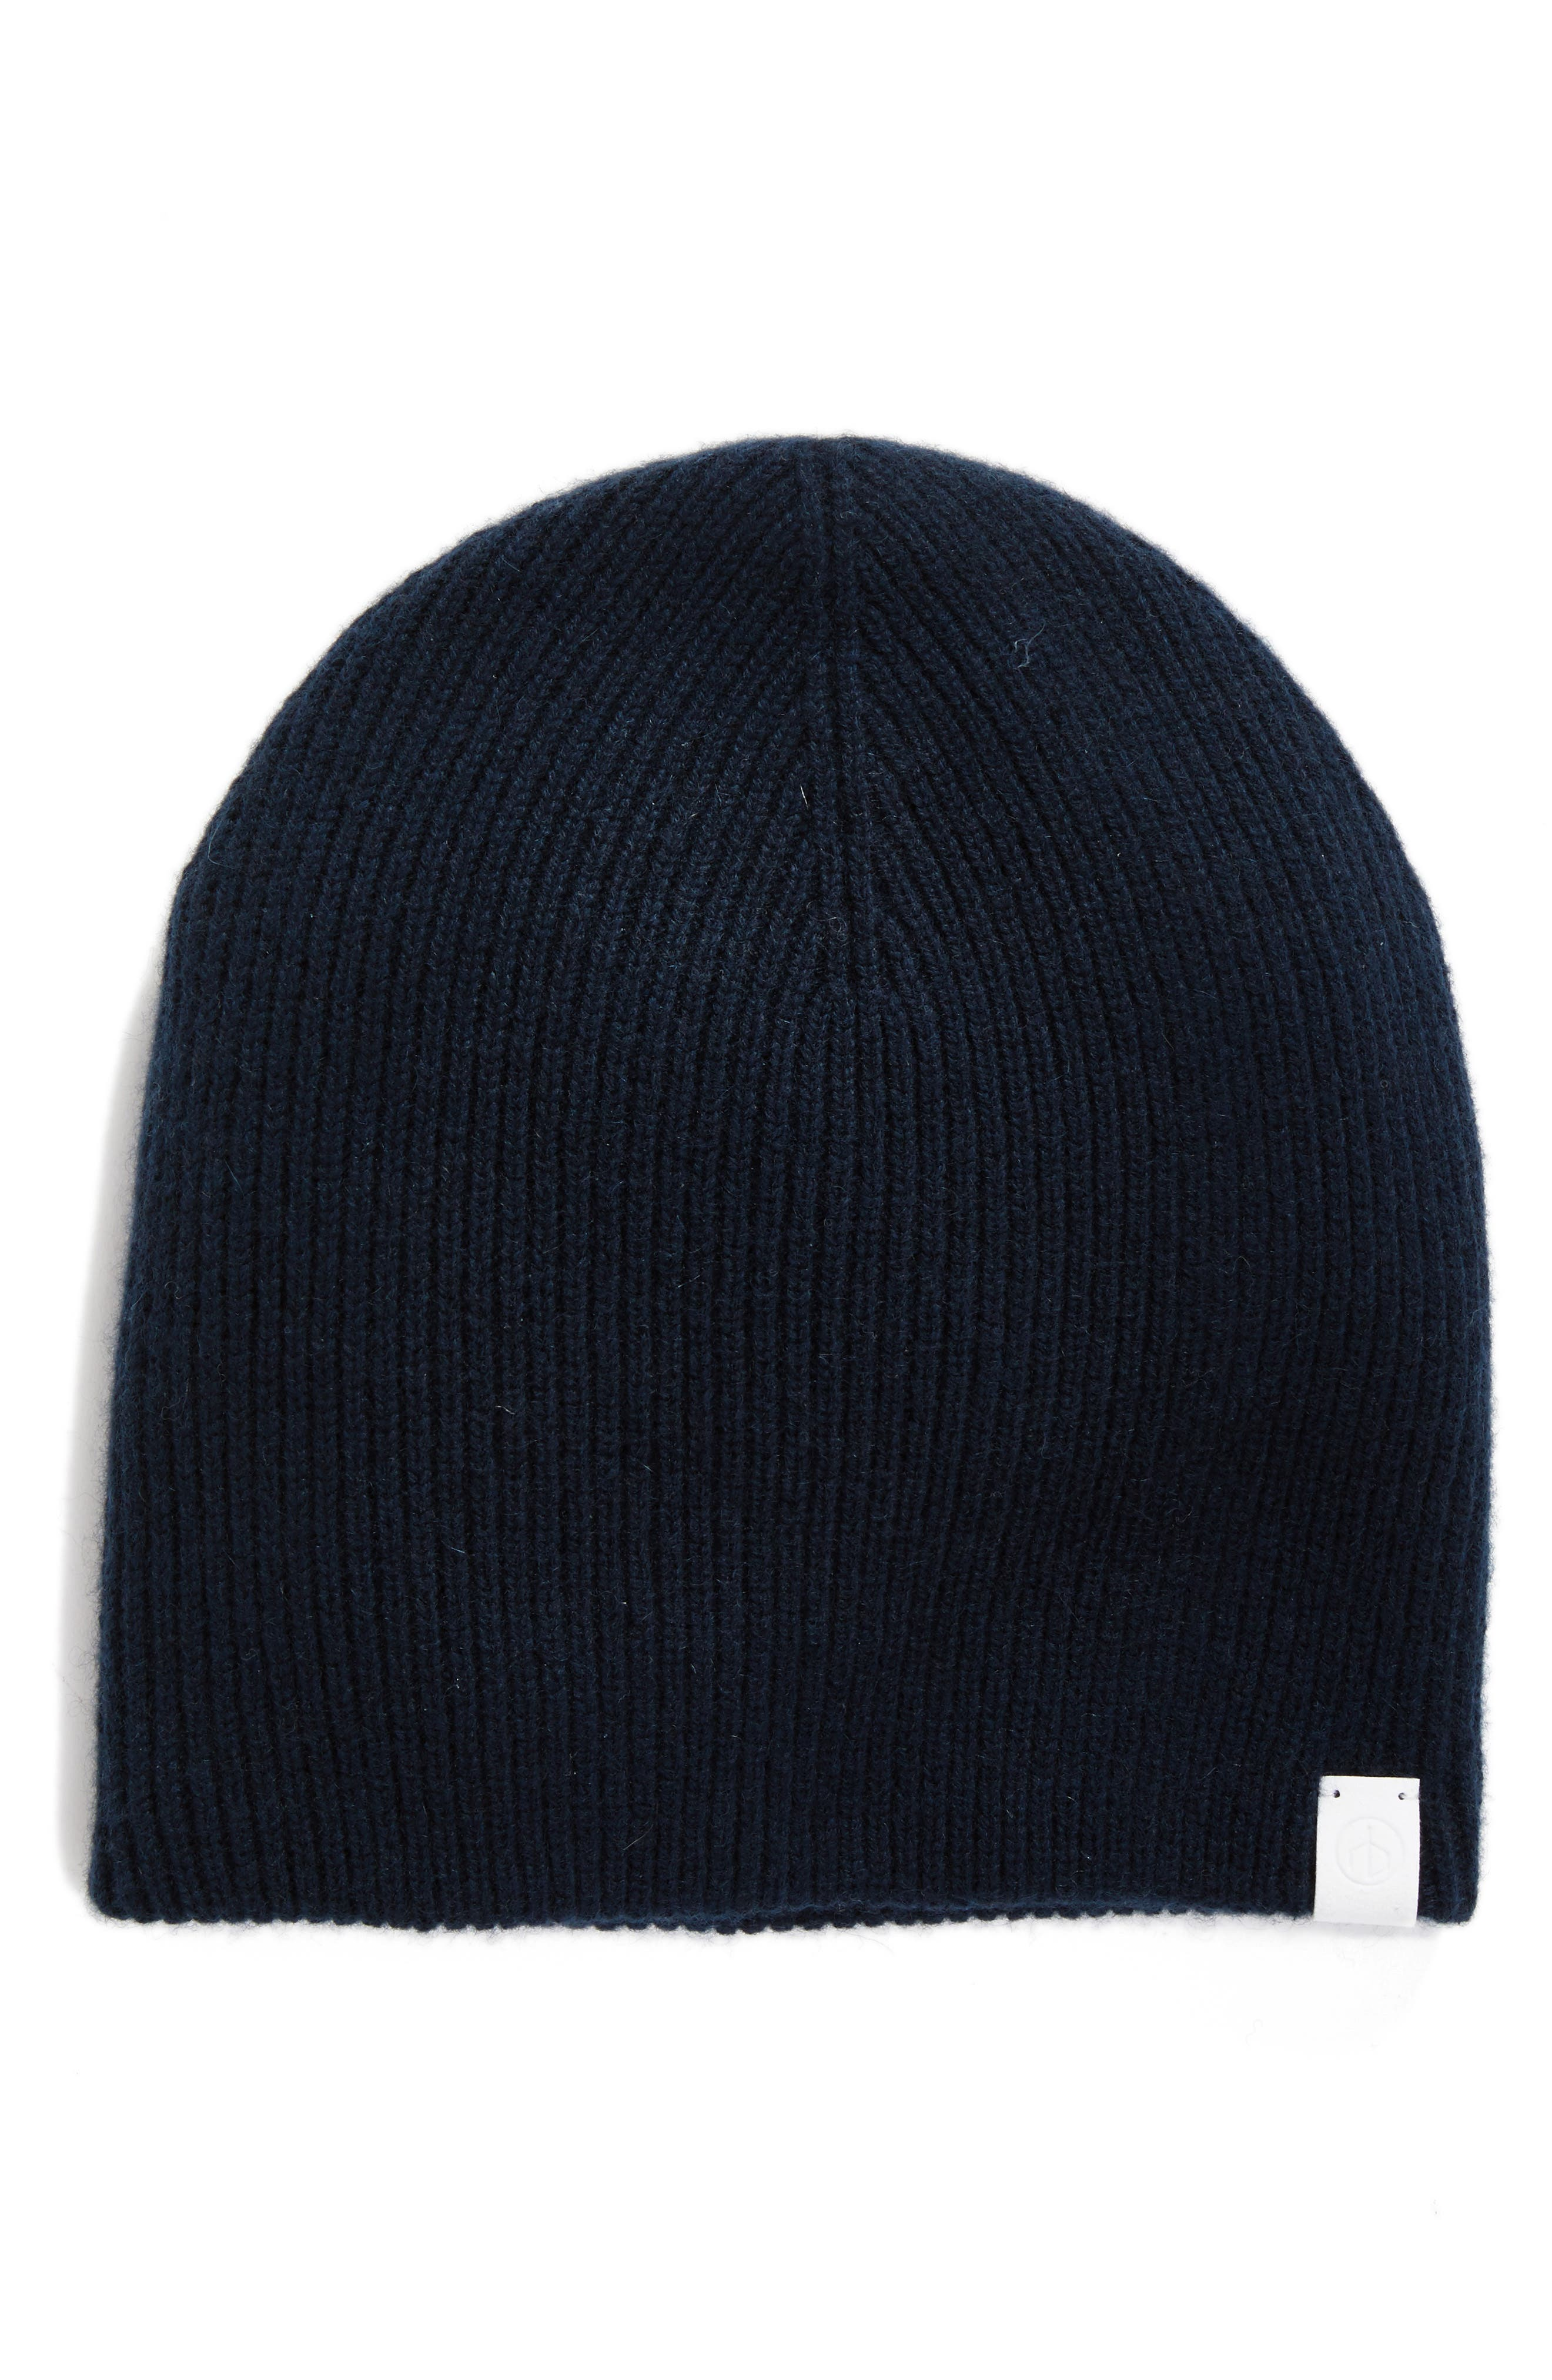 Ace Reversible Cashmere Beanie,                         Main,                         color, Navy